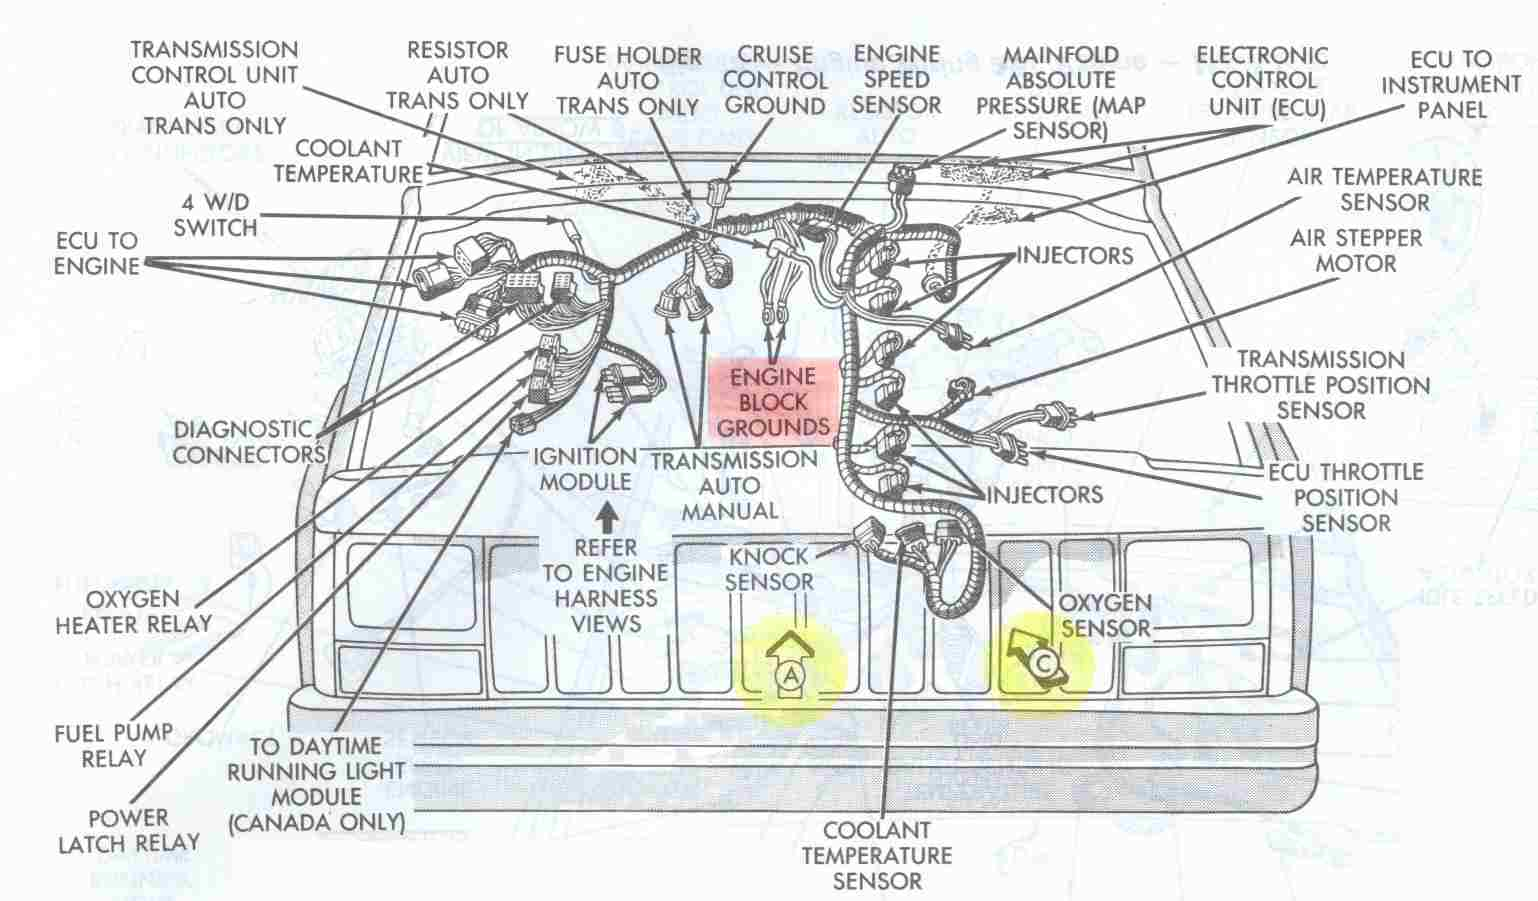 Electrical_Engine_Ground_Points_Overview jeep cherokee electrical diagnosing erratic behavior of engine 1996 jeep grand cherokee laredo wiring diagram at virtualis.co